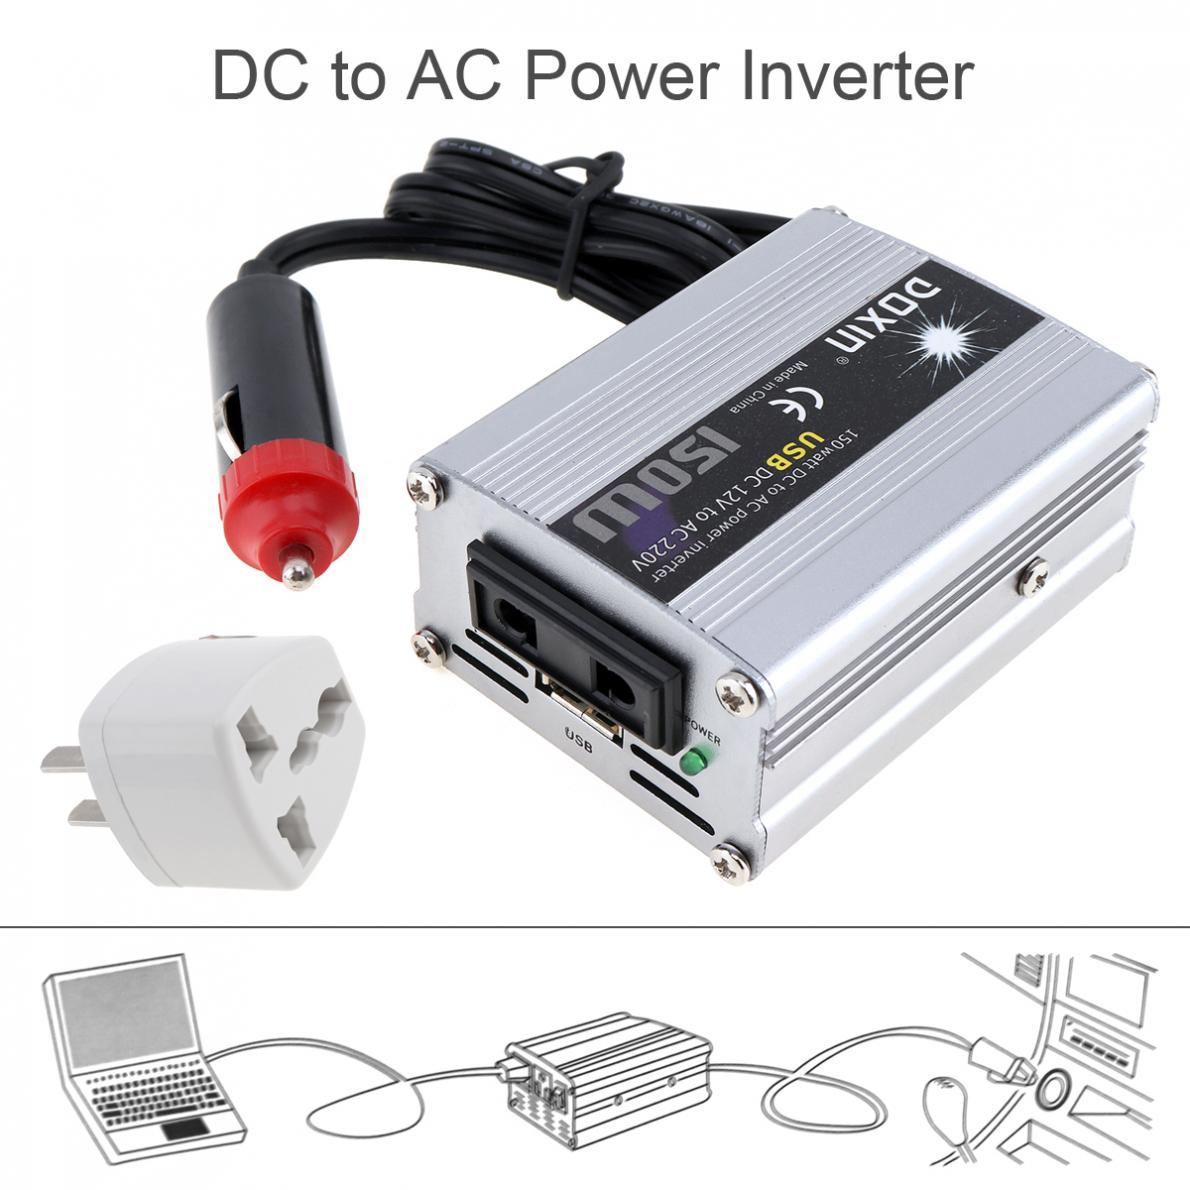 USB150W Home Car Power Inverter <font><b>Converter</b></font> DC <font><b>12</b></font> <font><b>V</b></font> <font><b>220</b></font> <font><b>V</b></font> Car Battery Charger Adapter Car Power Supply image